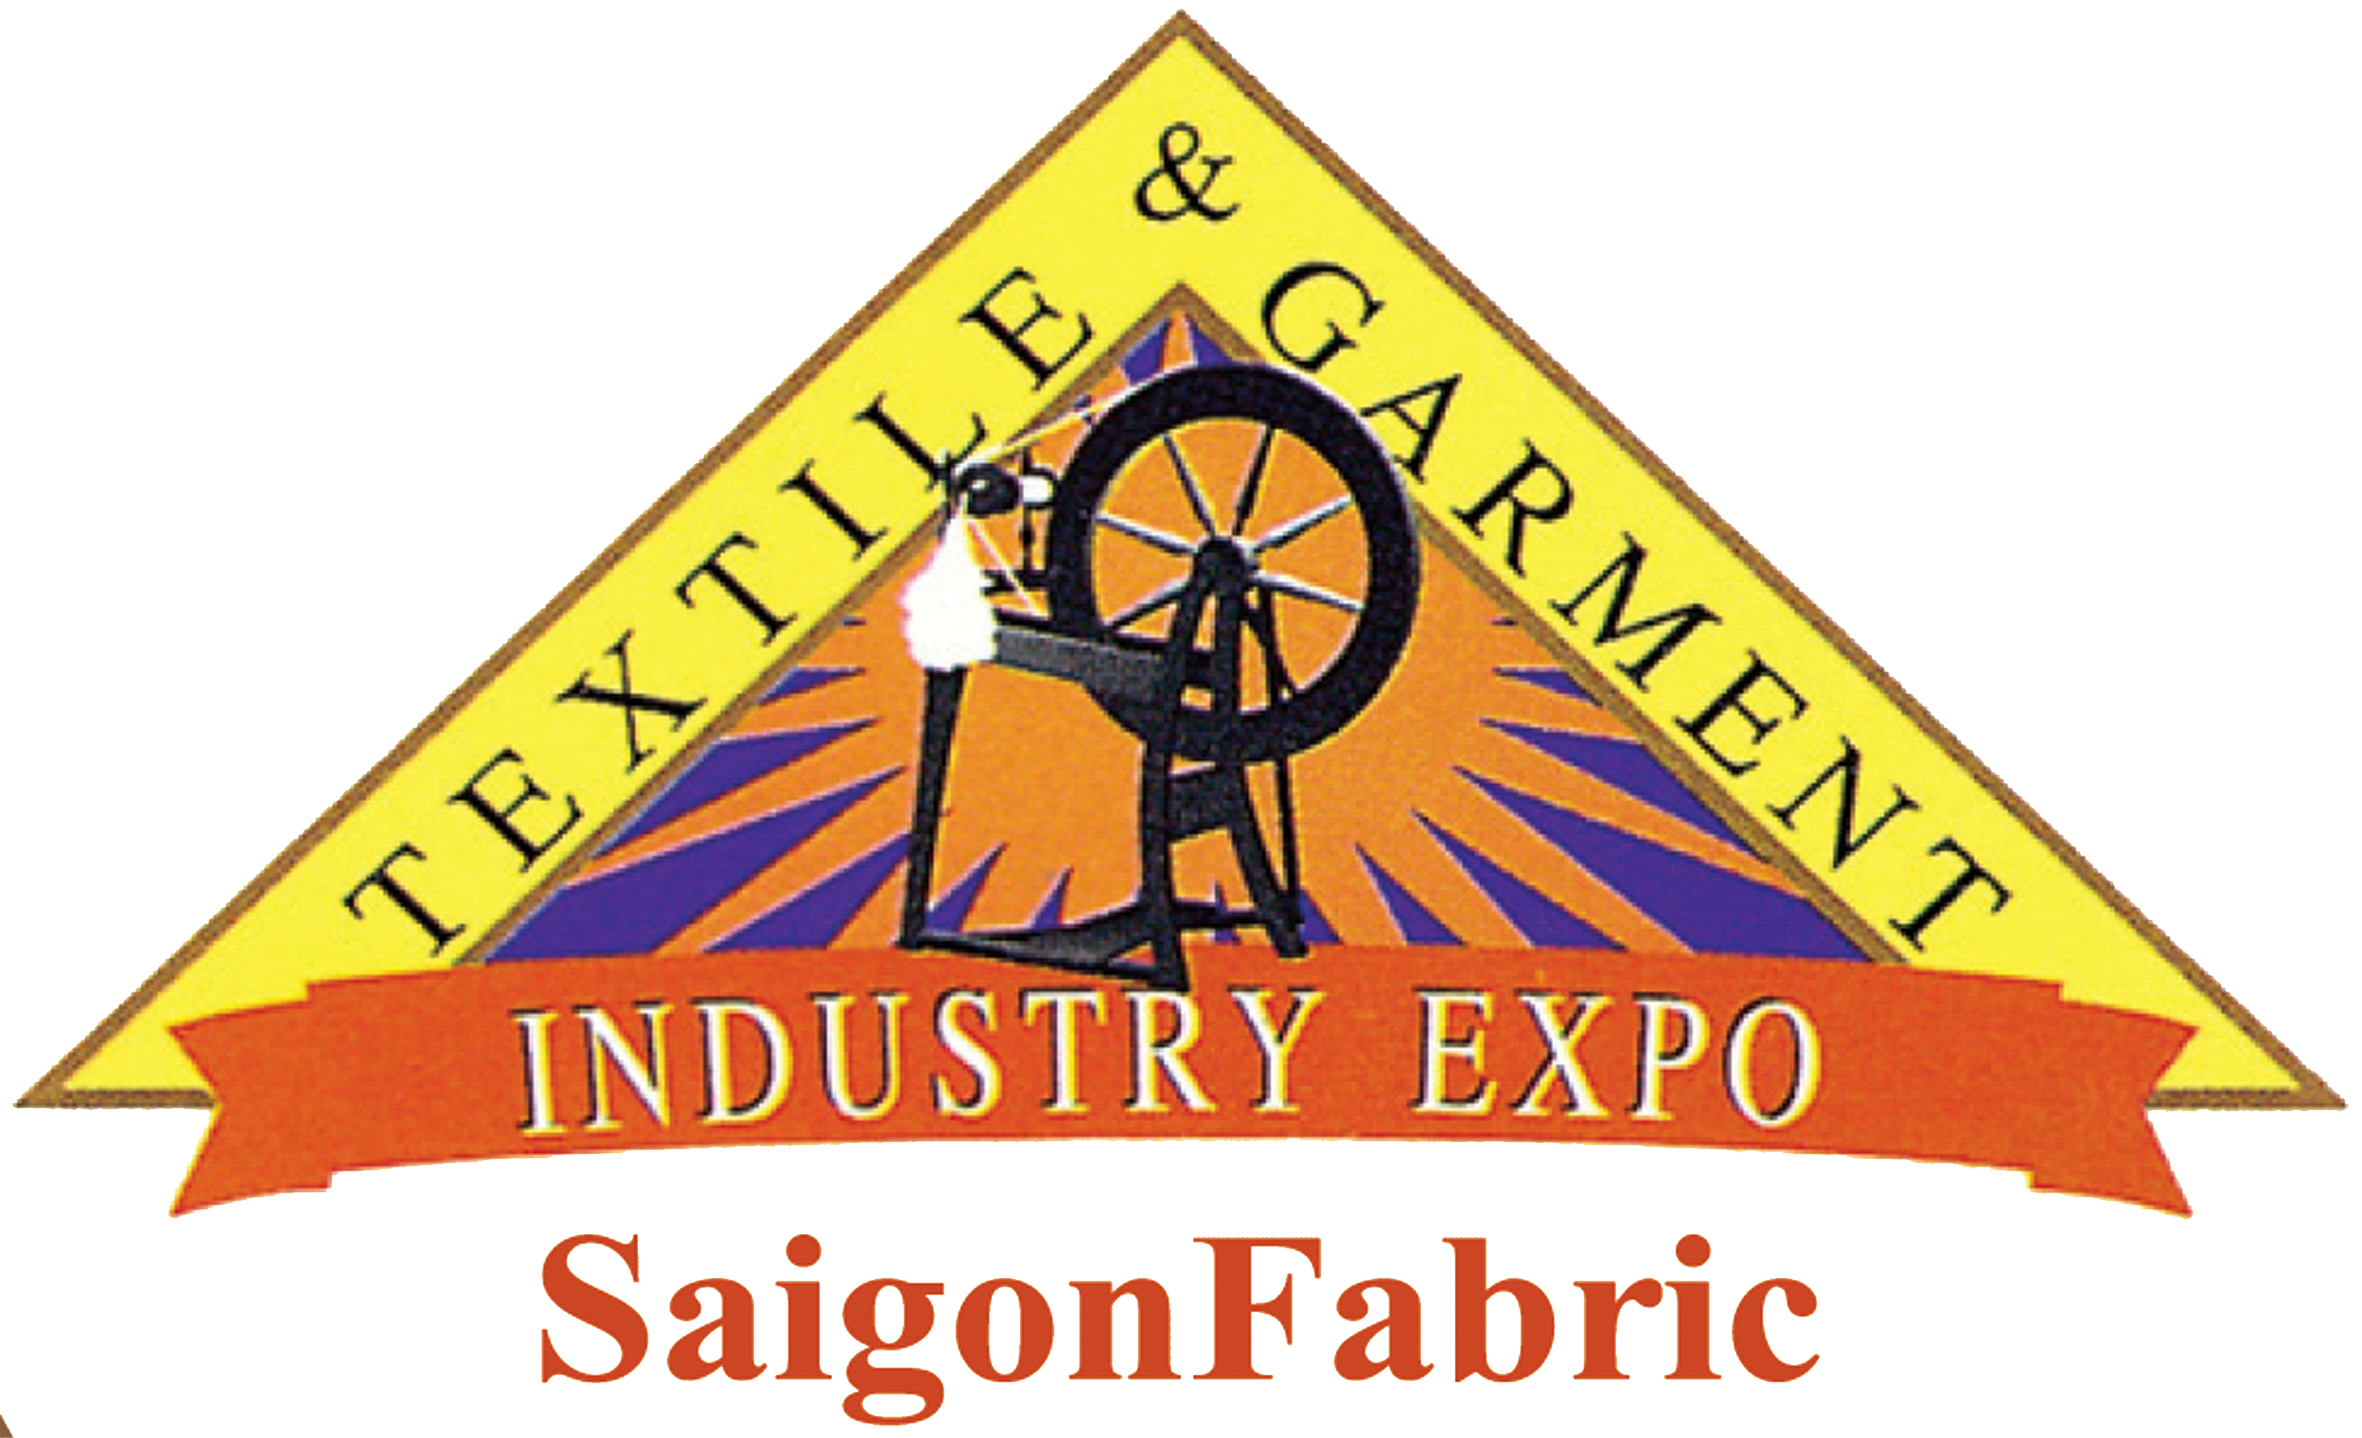 Vietnam Fabric & Garment Accessories Expo